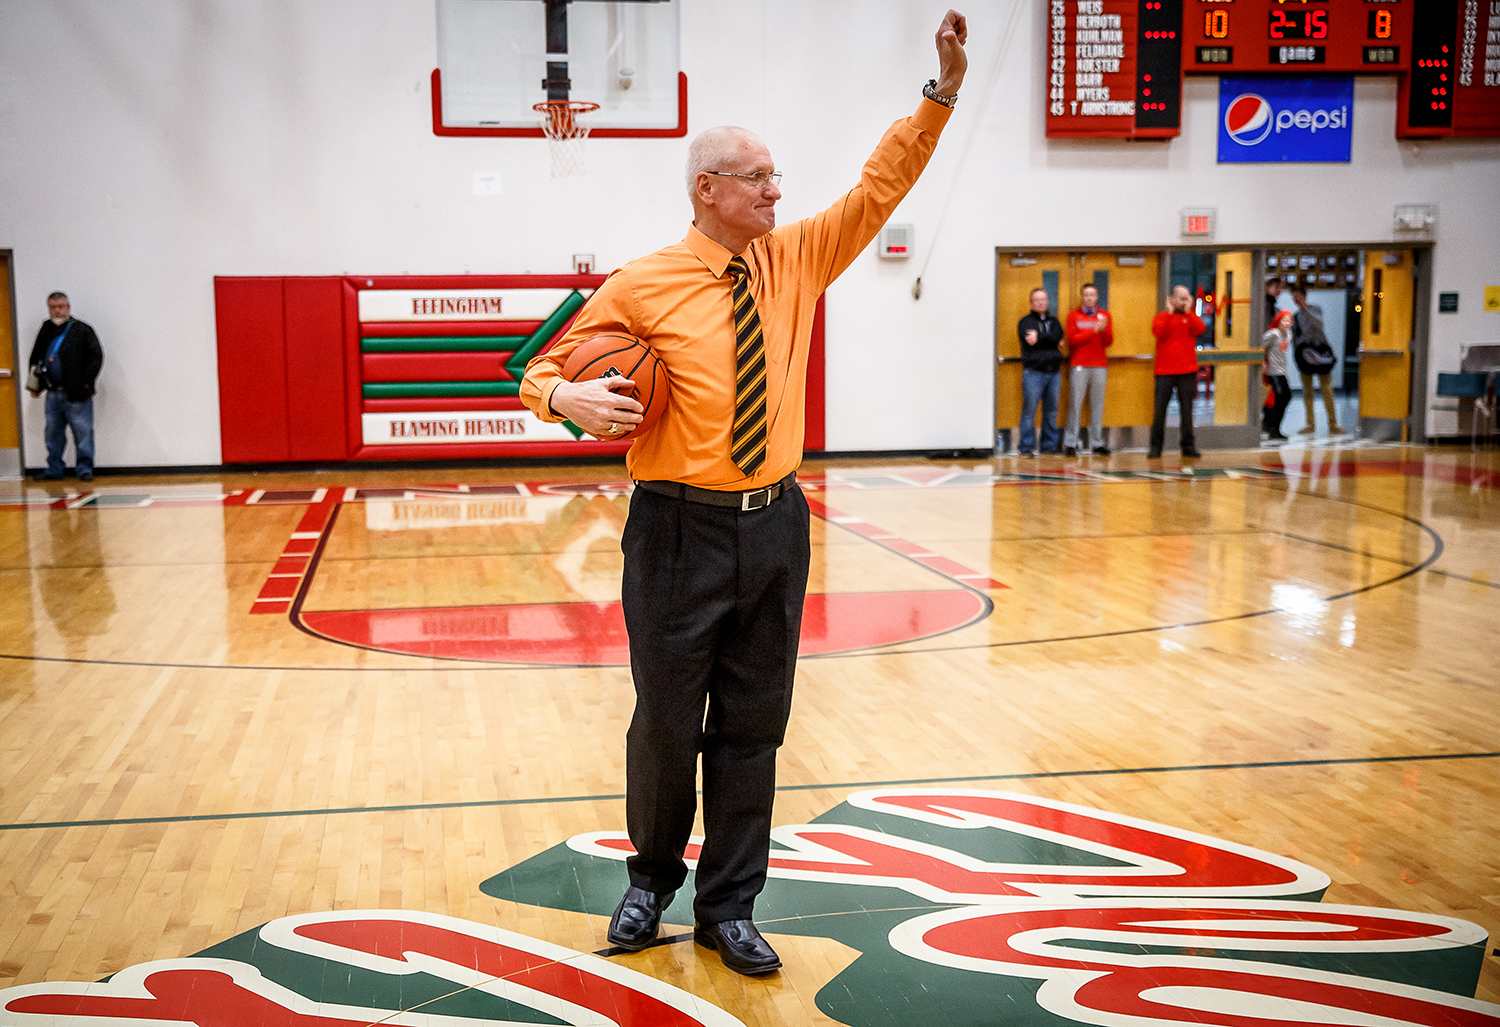 Lincoln boys basketball head coach Neil Alexander waves to the crowd after he is recognized with a game ball after getting his 800th win against Effingham after the Railsplitters defeated the Flaming Hearts 45-35 at Effingham High School, Friday, Feb. 9, 2018, in Effingham, Ill. [Justin L. Fowler/The State Journal-Register]